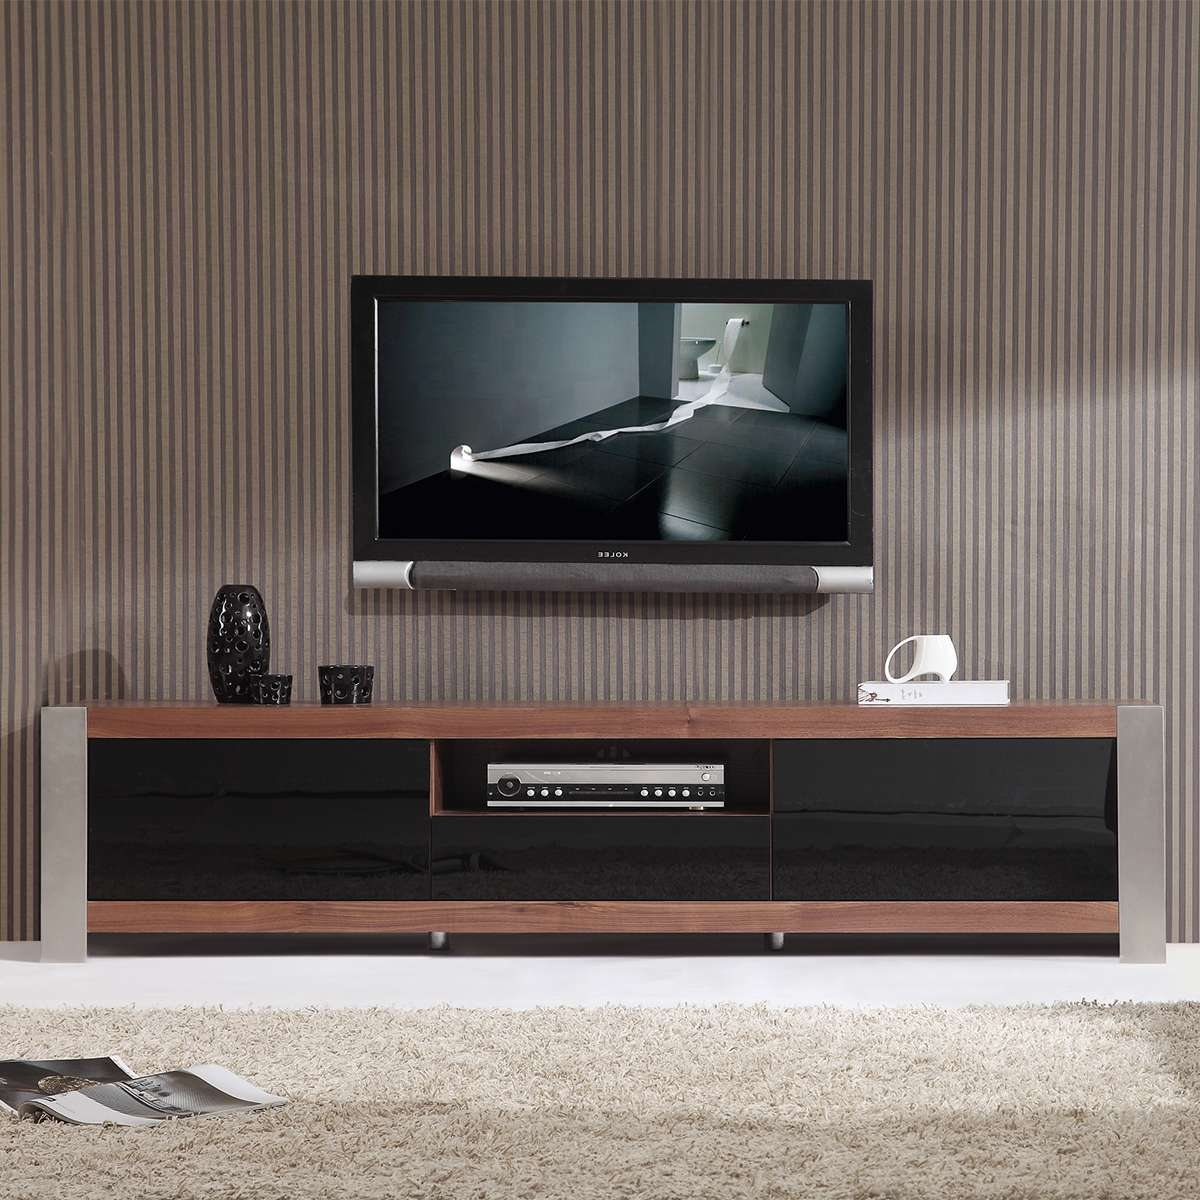 Catchy Gloss Black Tv Plasma Stands Coa Similiar Tv Stands Inside Contemporary Tv Stands For Flat Screens (View 4 of 15)